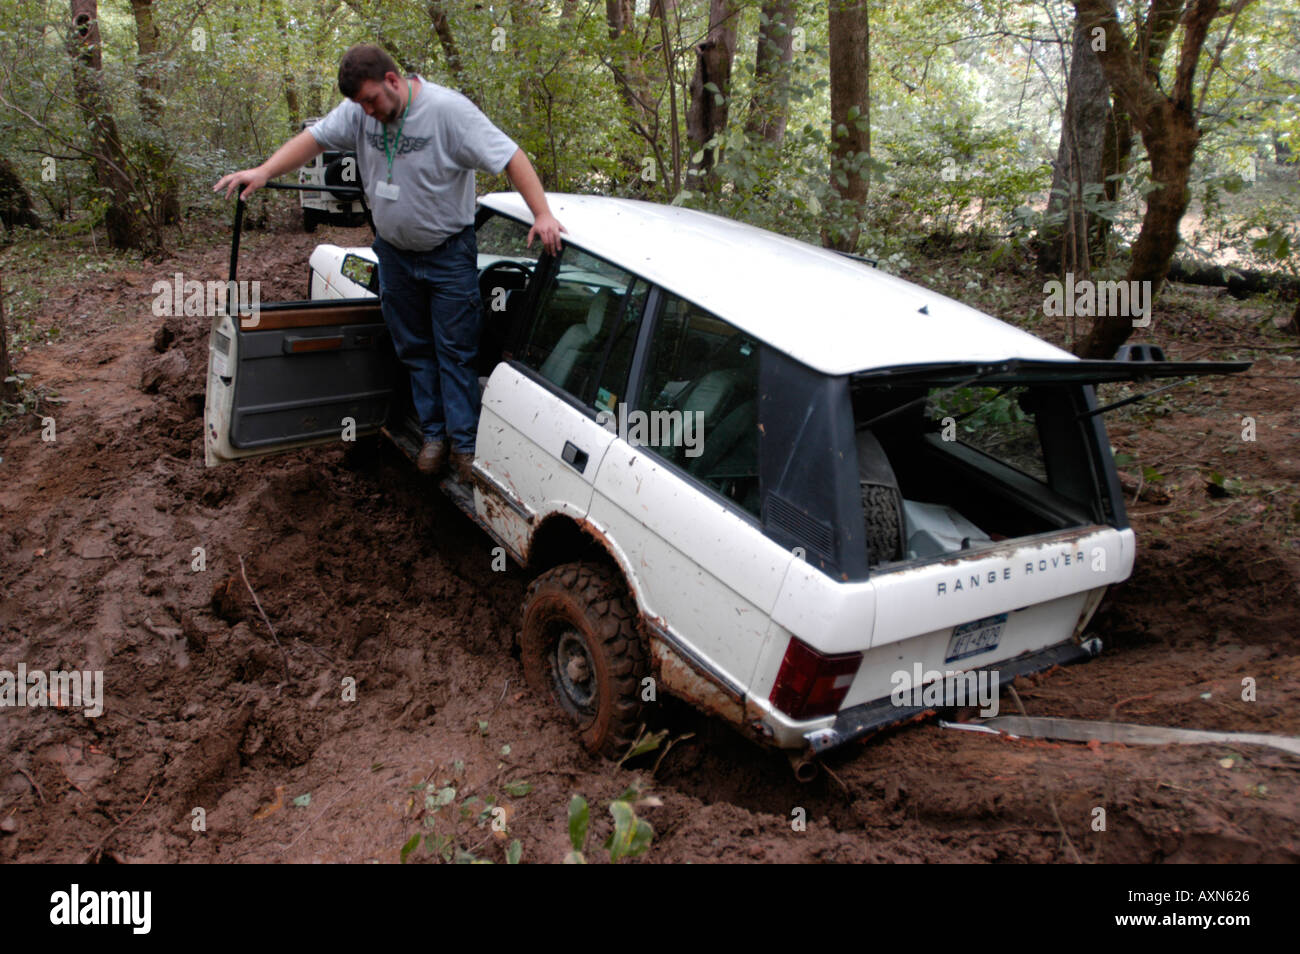 Stuck In Mud Stock Photos & Stuck In Mud Stock Images - Alamy